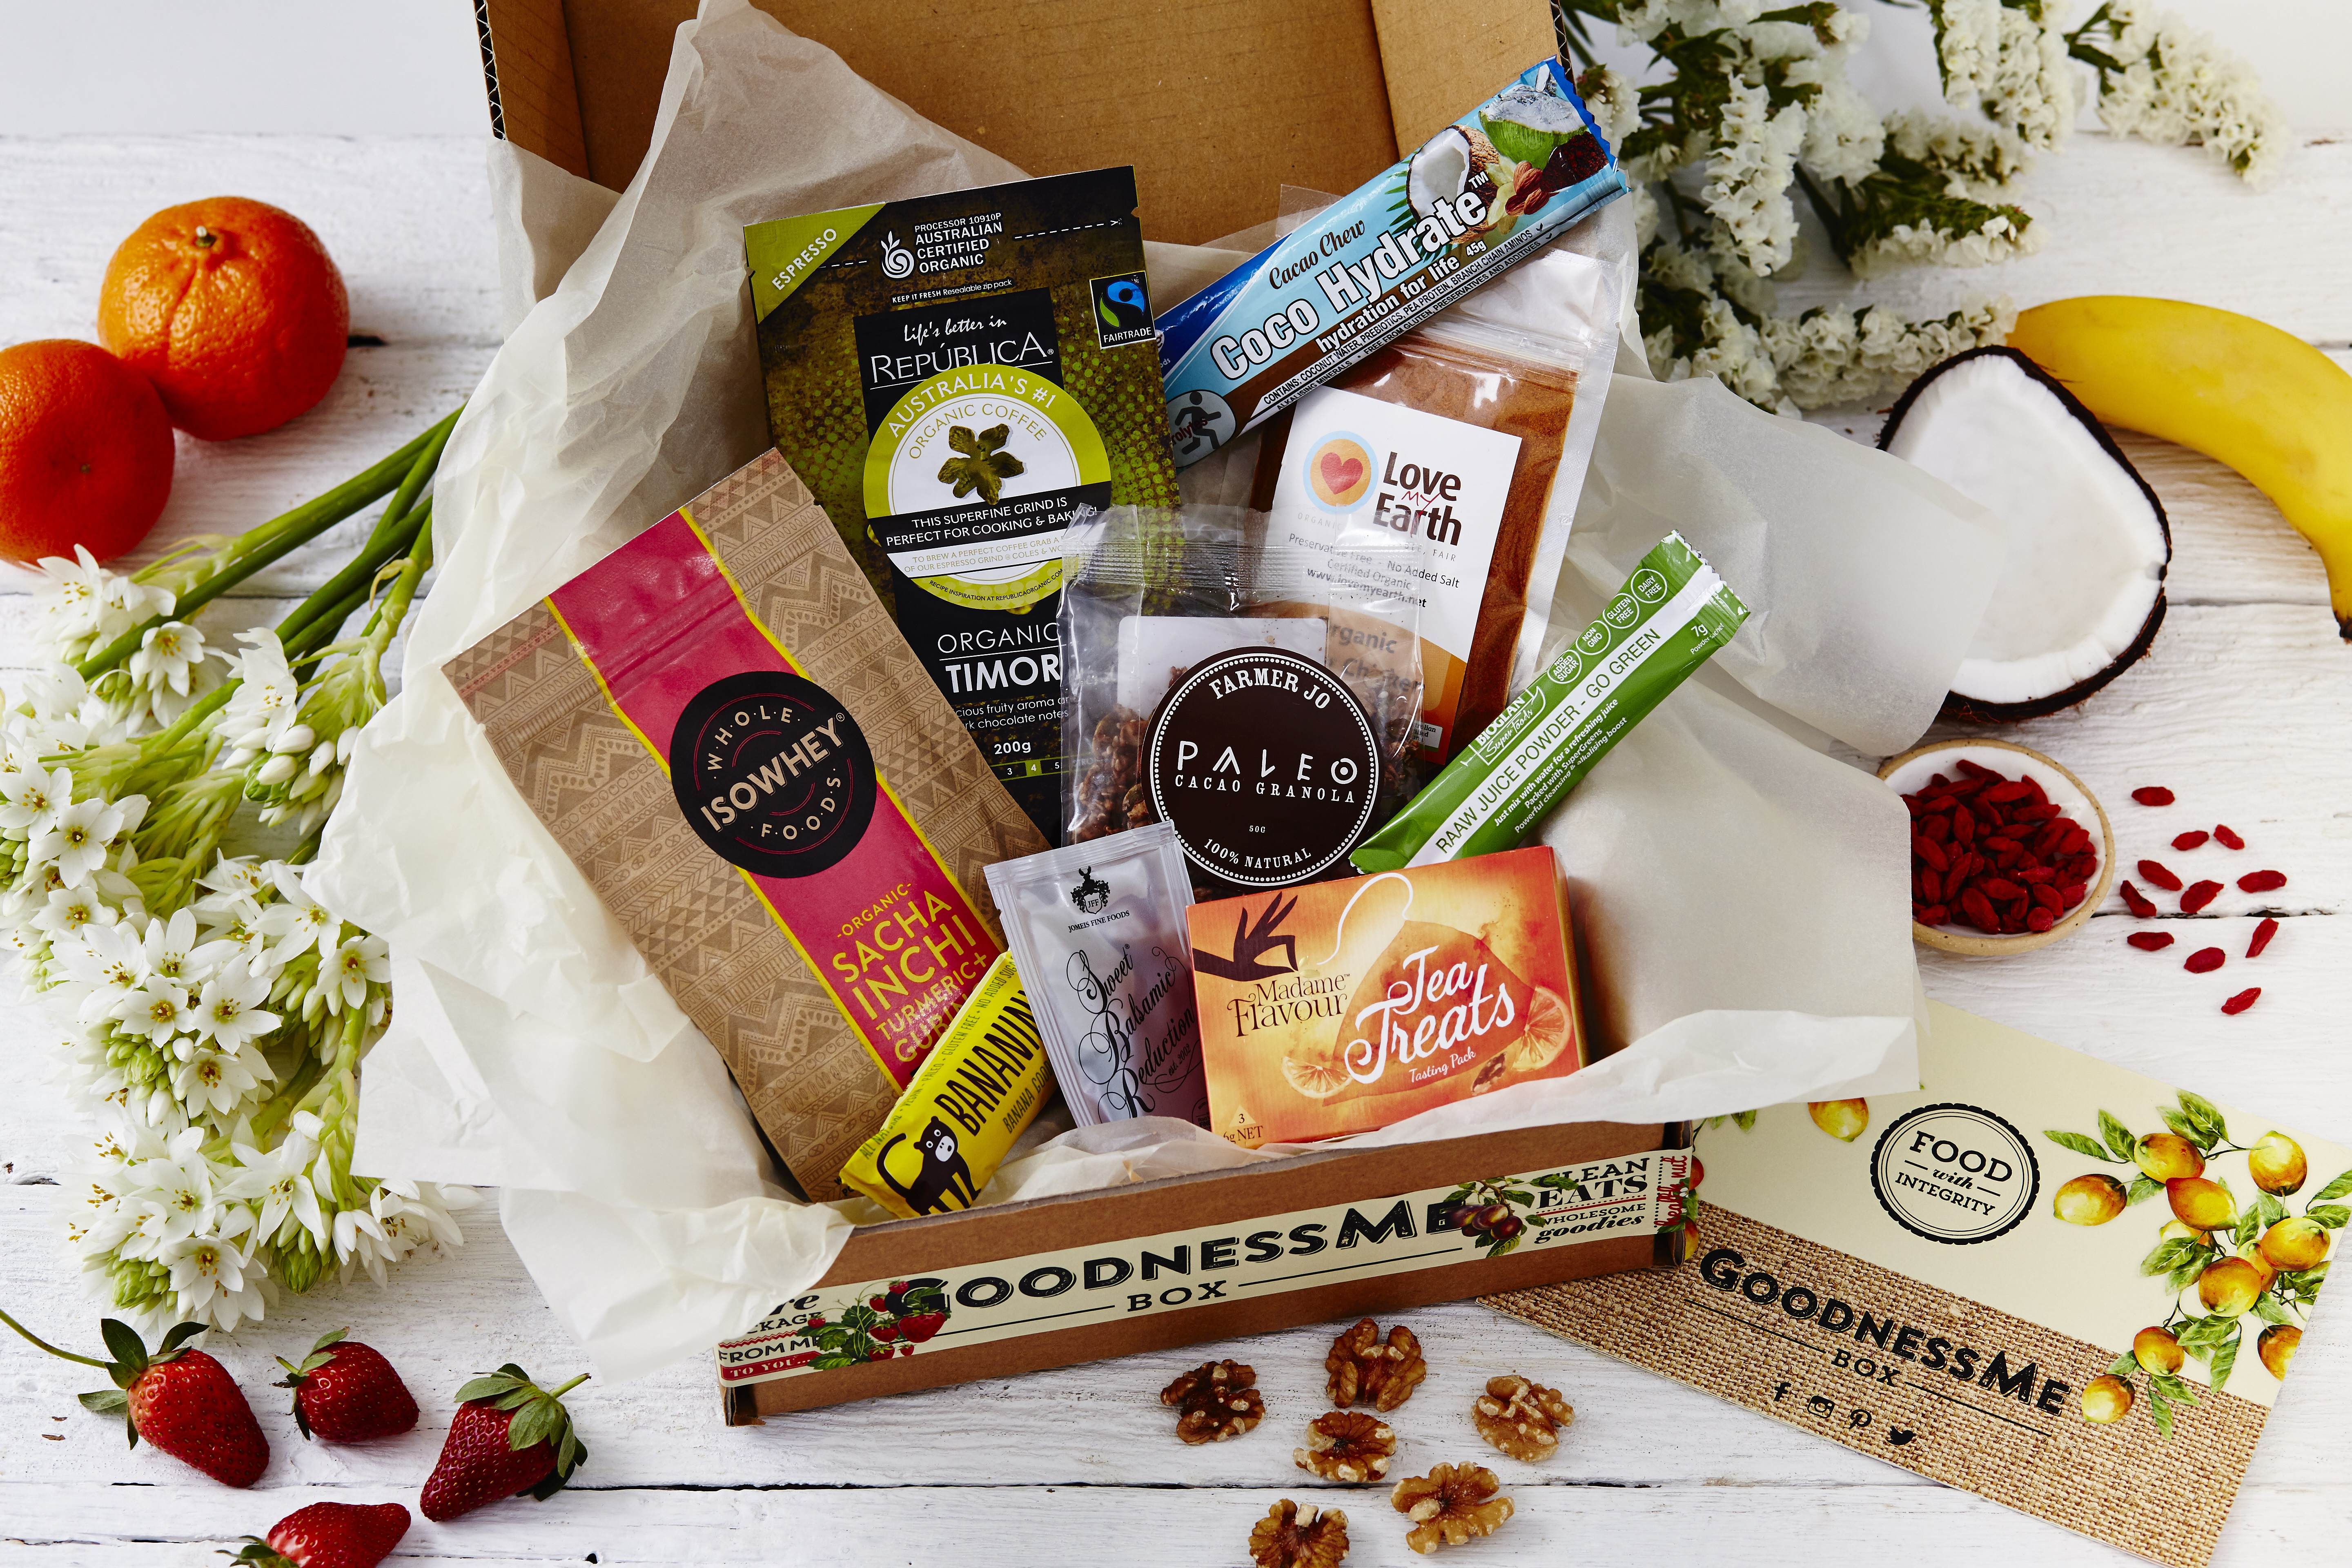 How we choose products for a GoodnessMe Box